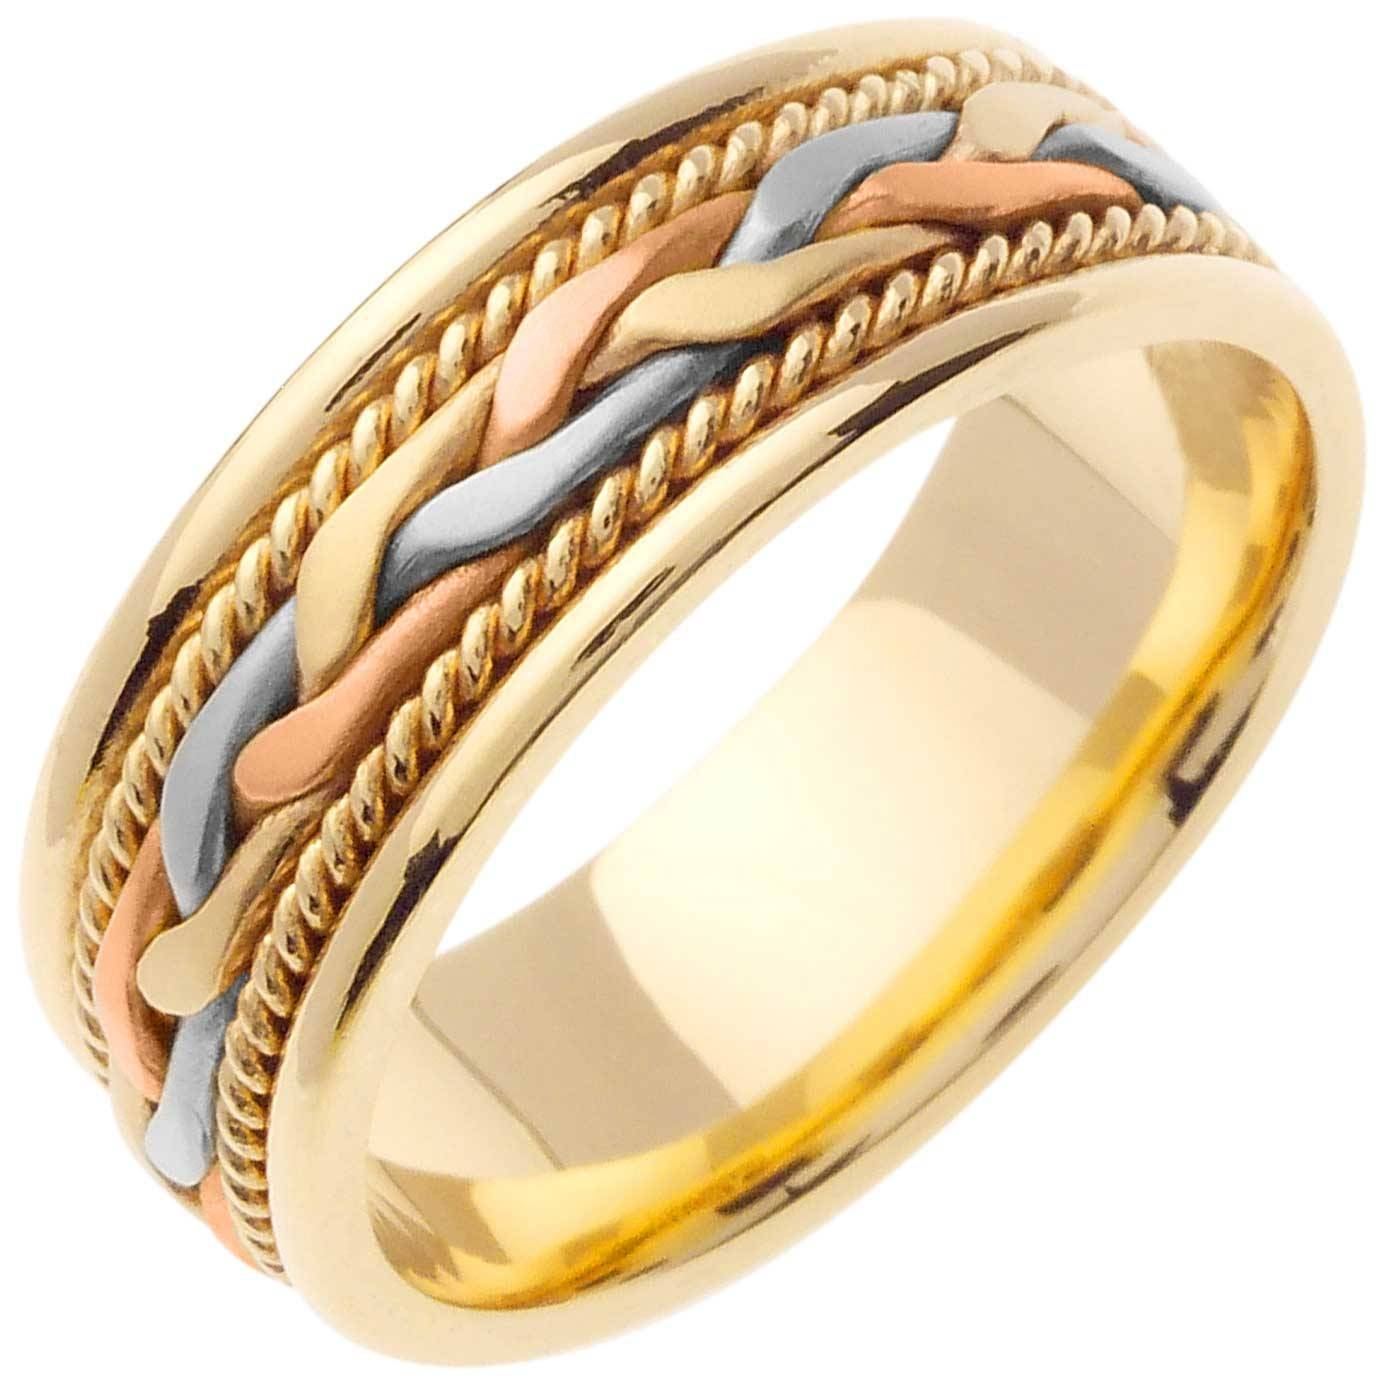 14k Tri Color Gold French Braid Band 7mm 3000182 – Shop At Intended For Three Color Braided Wedding Bands (View 2 of 15)